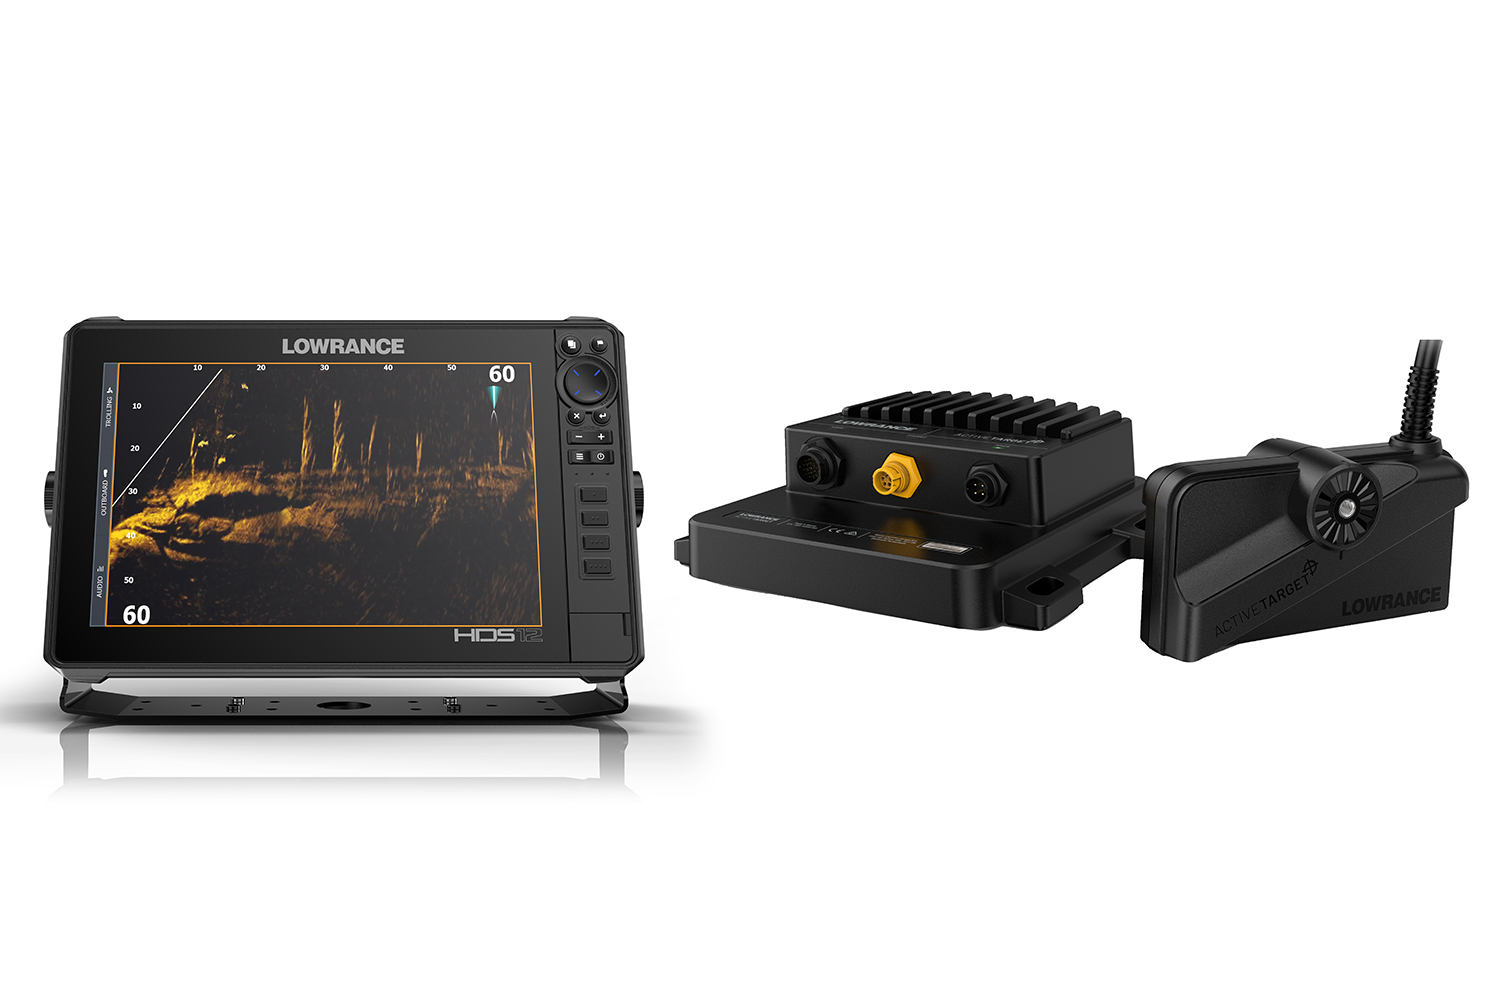 Lowrance announced the launch of its new, high-resolution ActiveTarget Live Sonar system